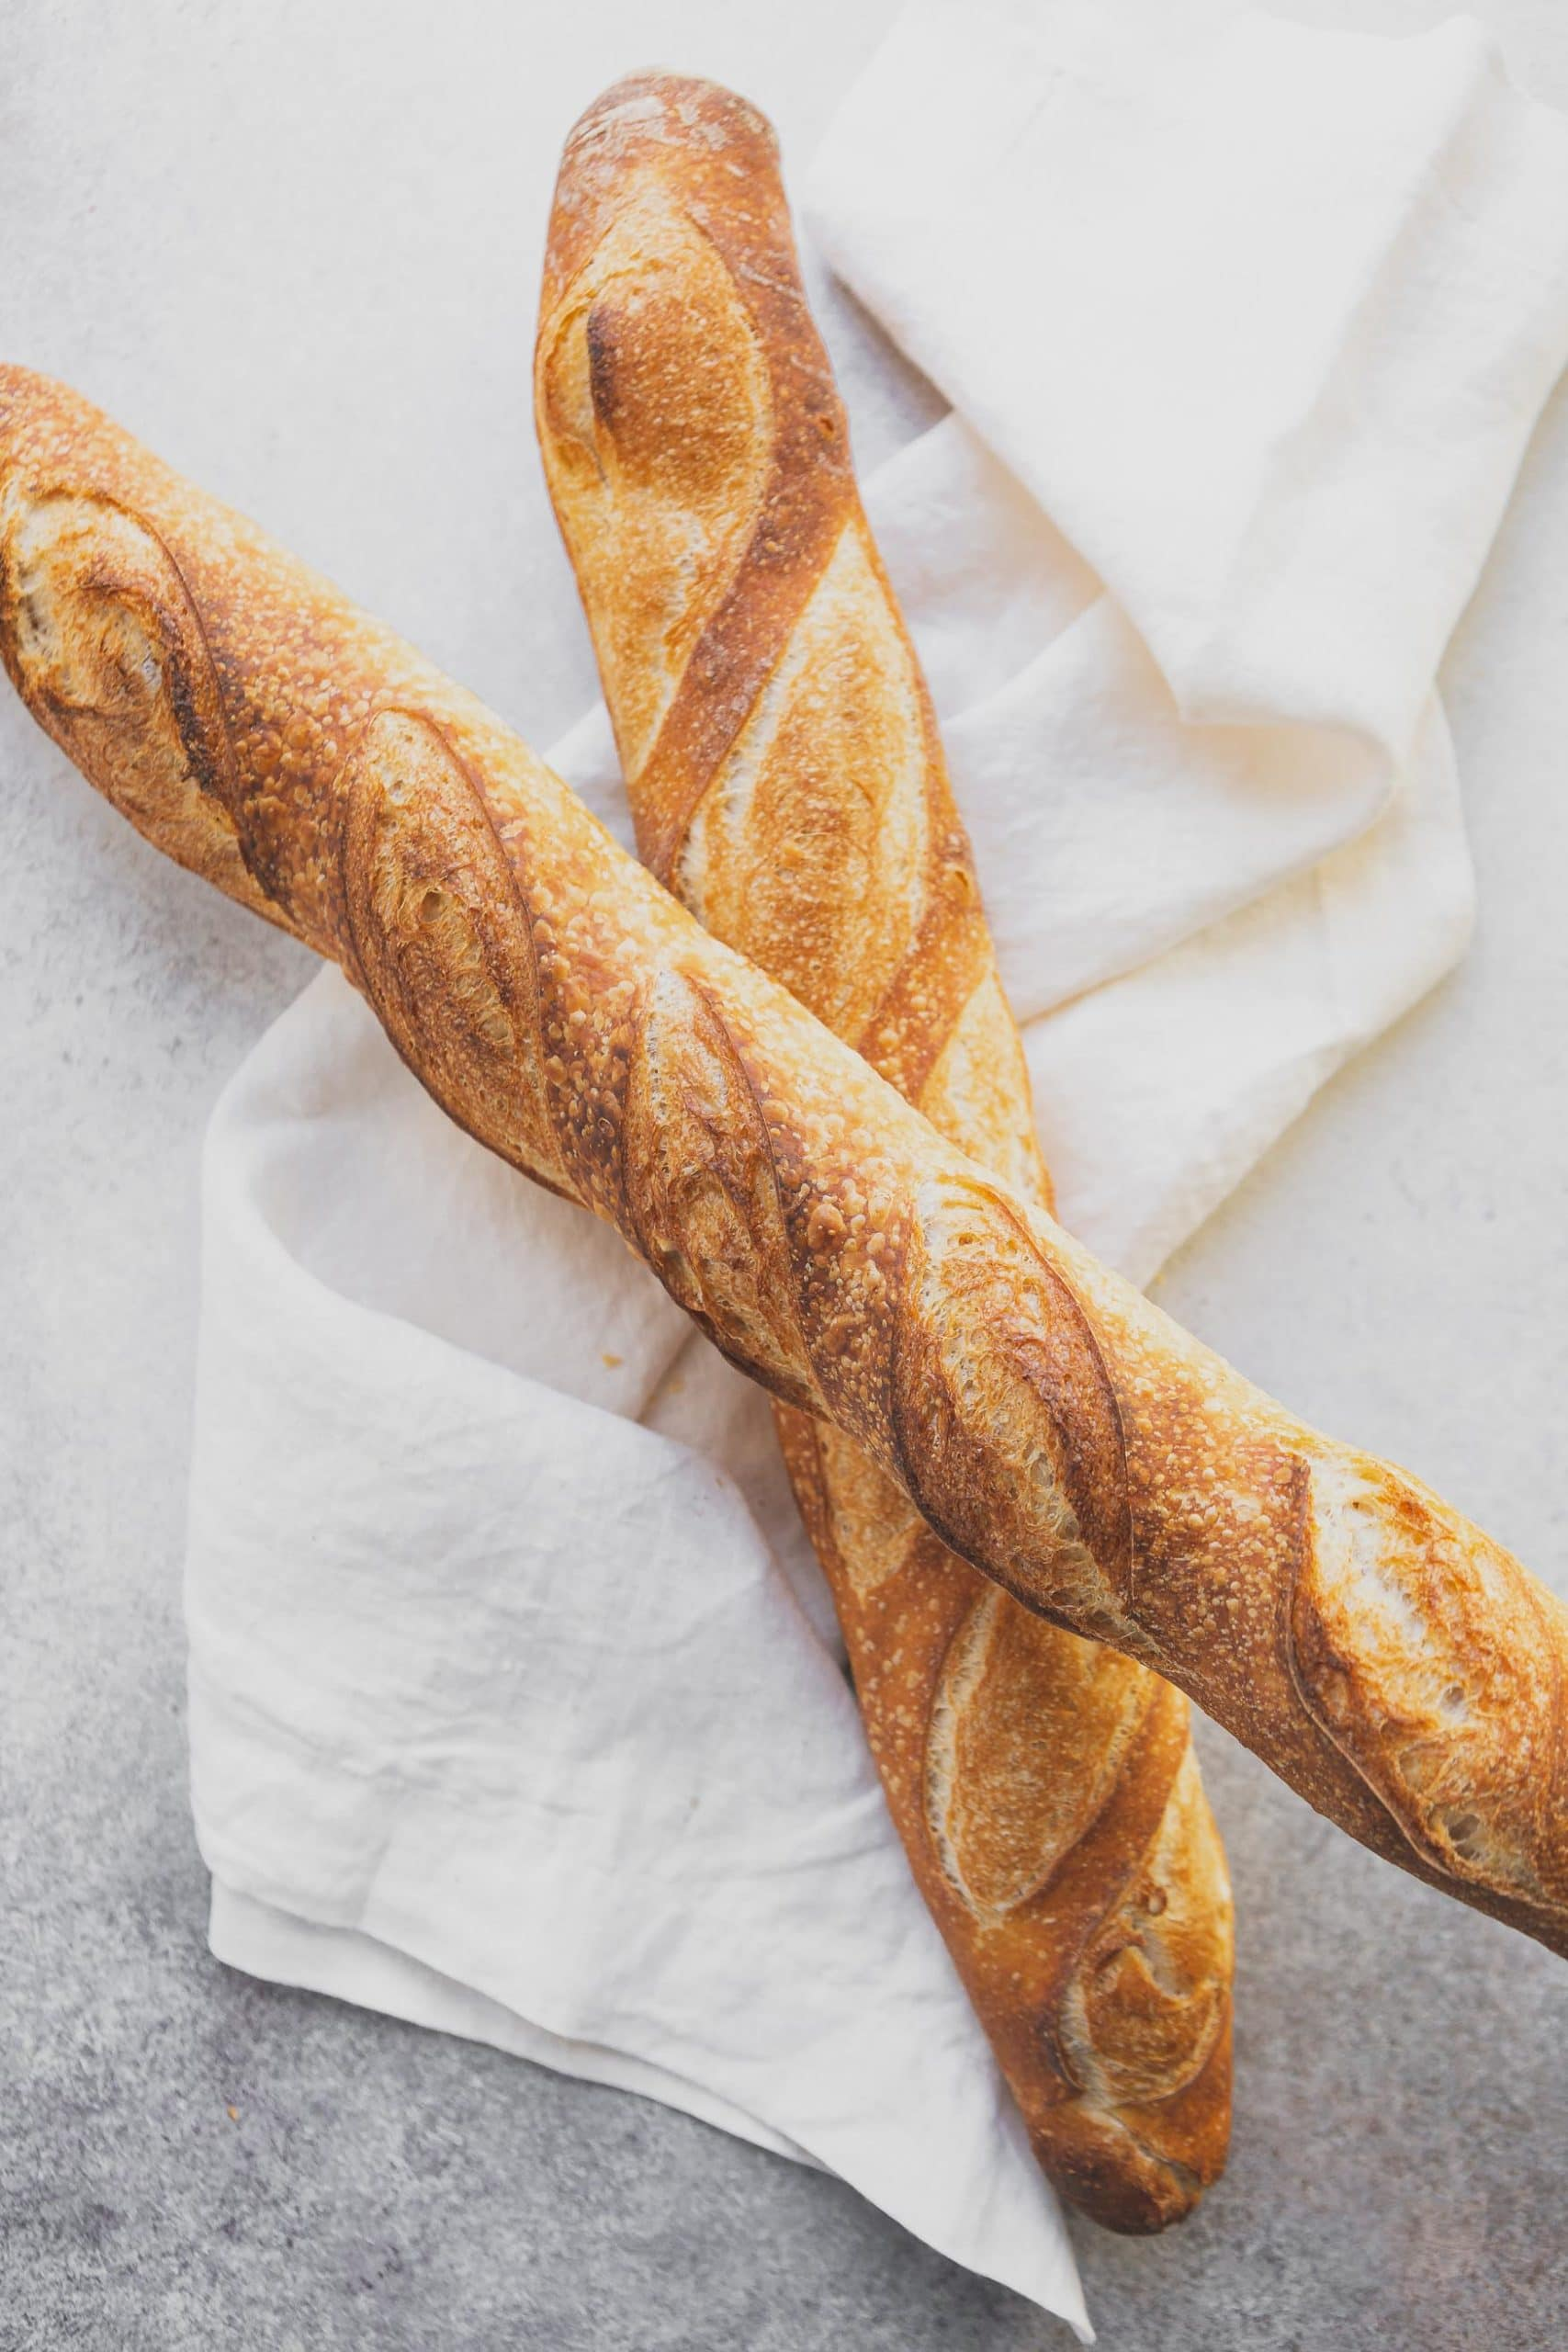 Two loaves of fresh baguettes on a white tea towel. They are baked to a golden brown.